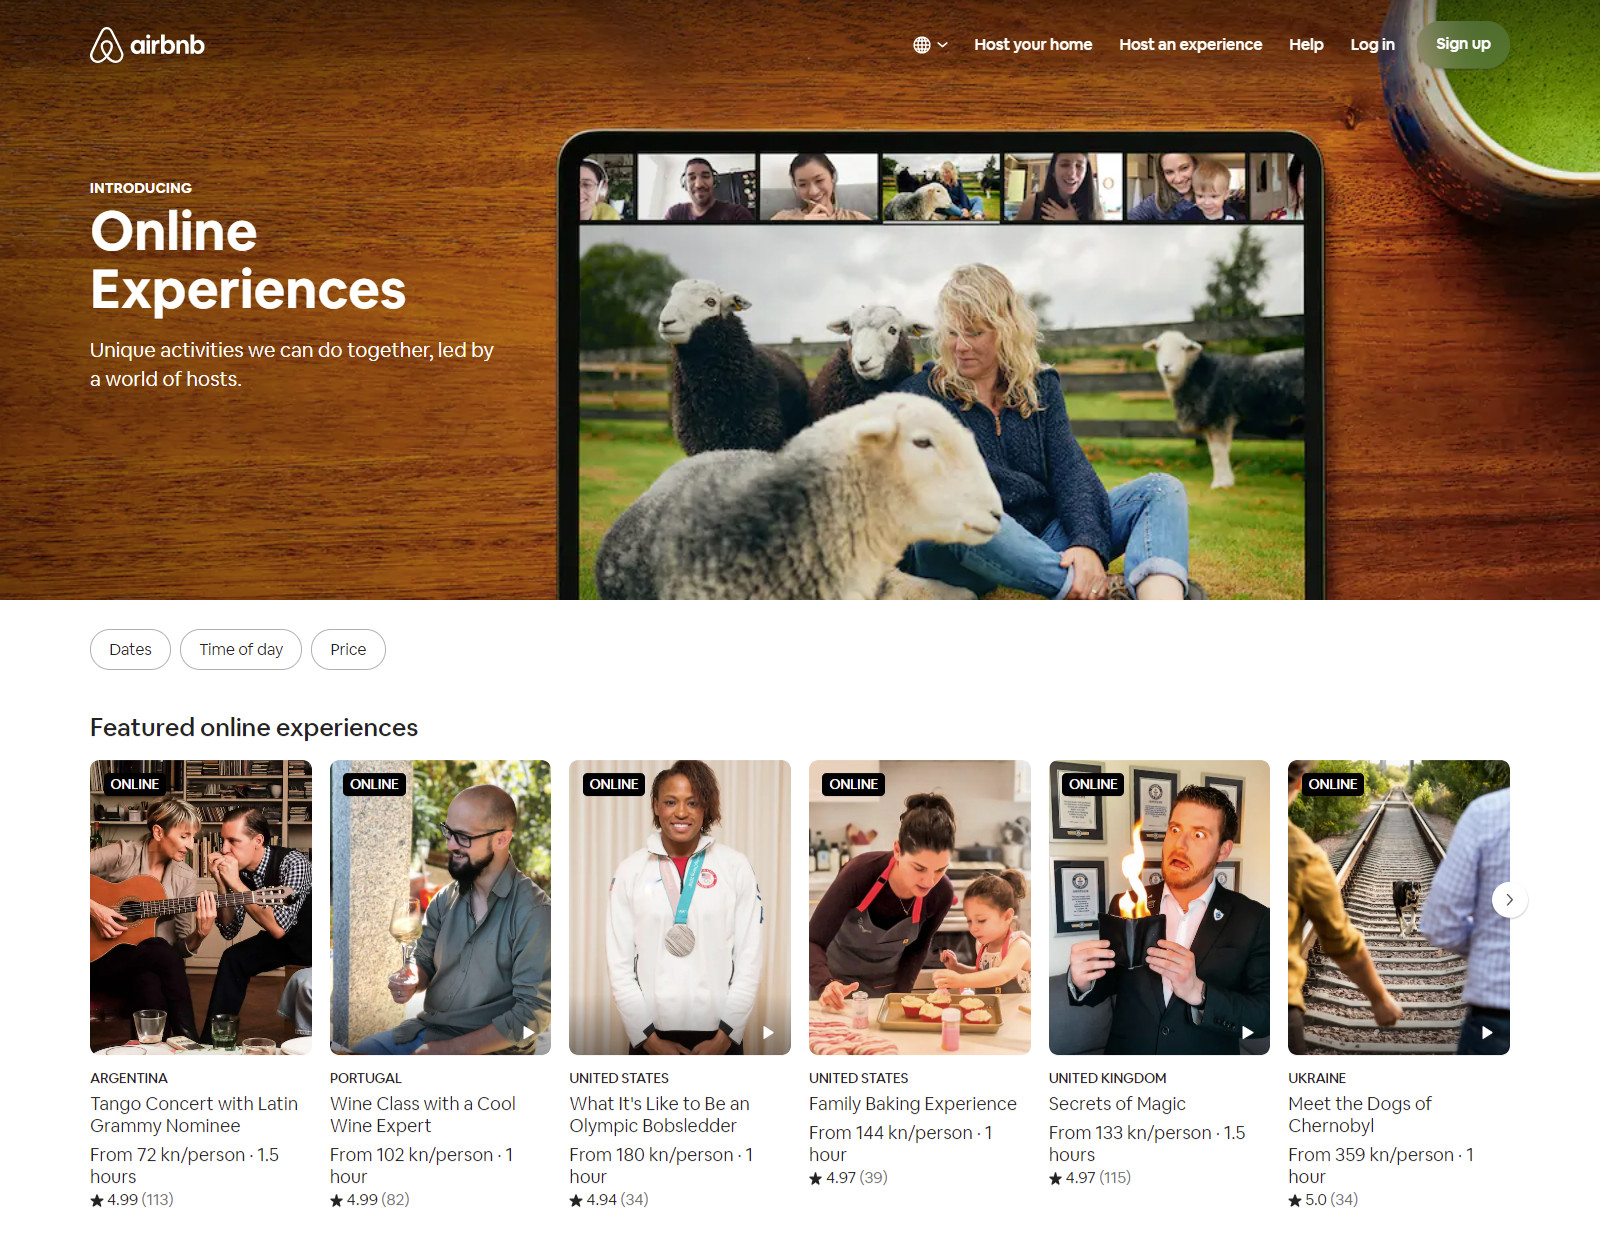 Airbnb website home page showing online experiences.